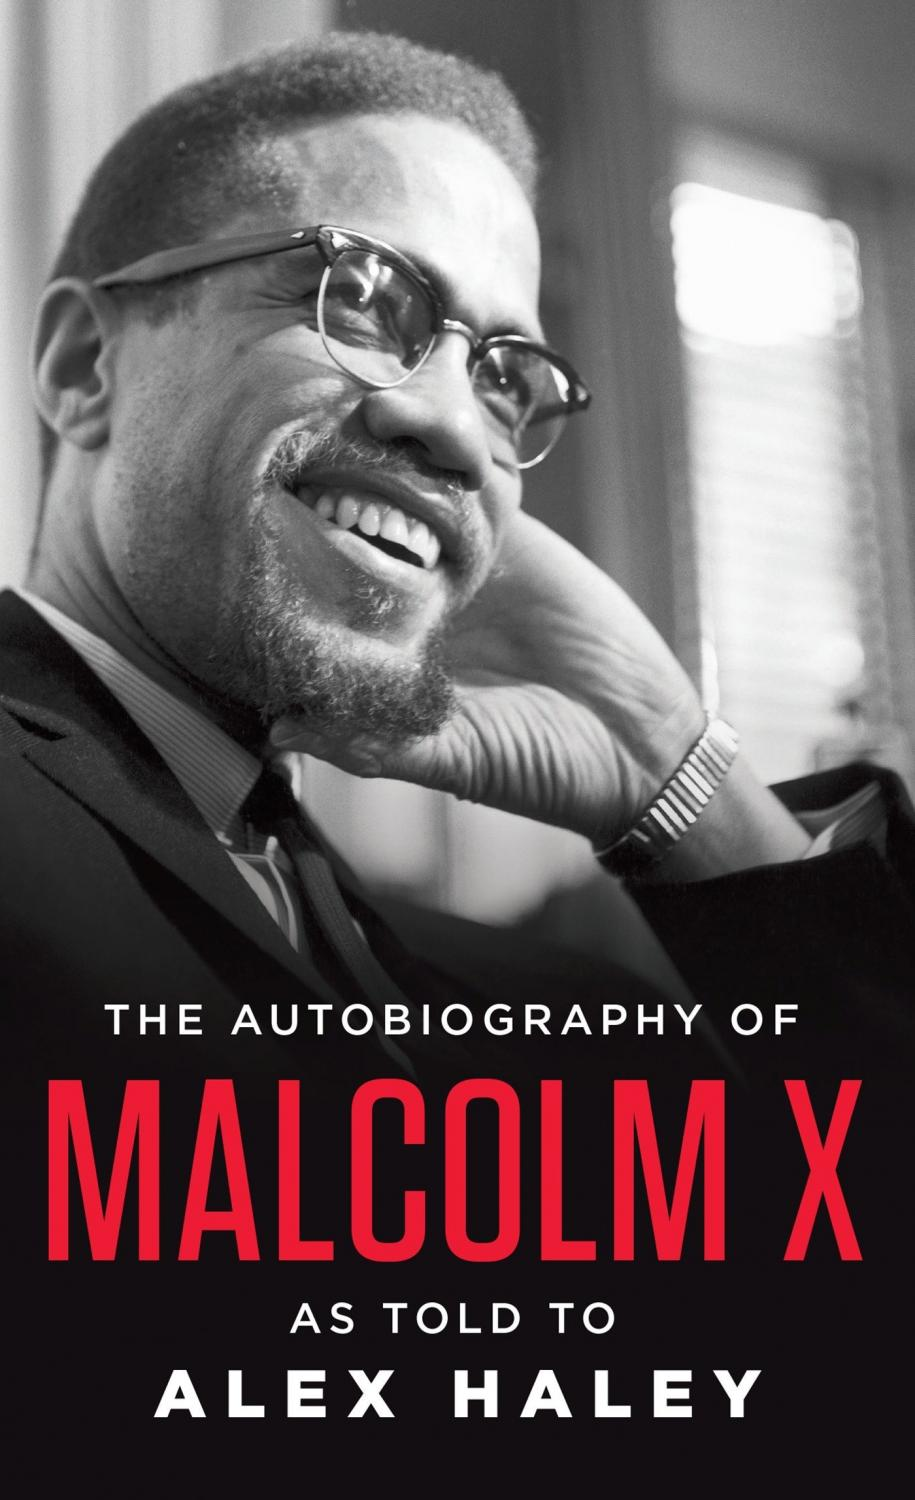 Book cover of The Autobiography of Malcom X